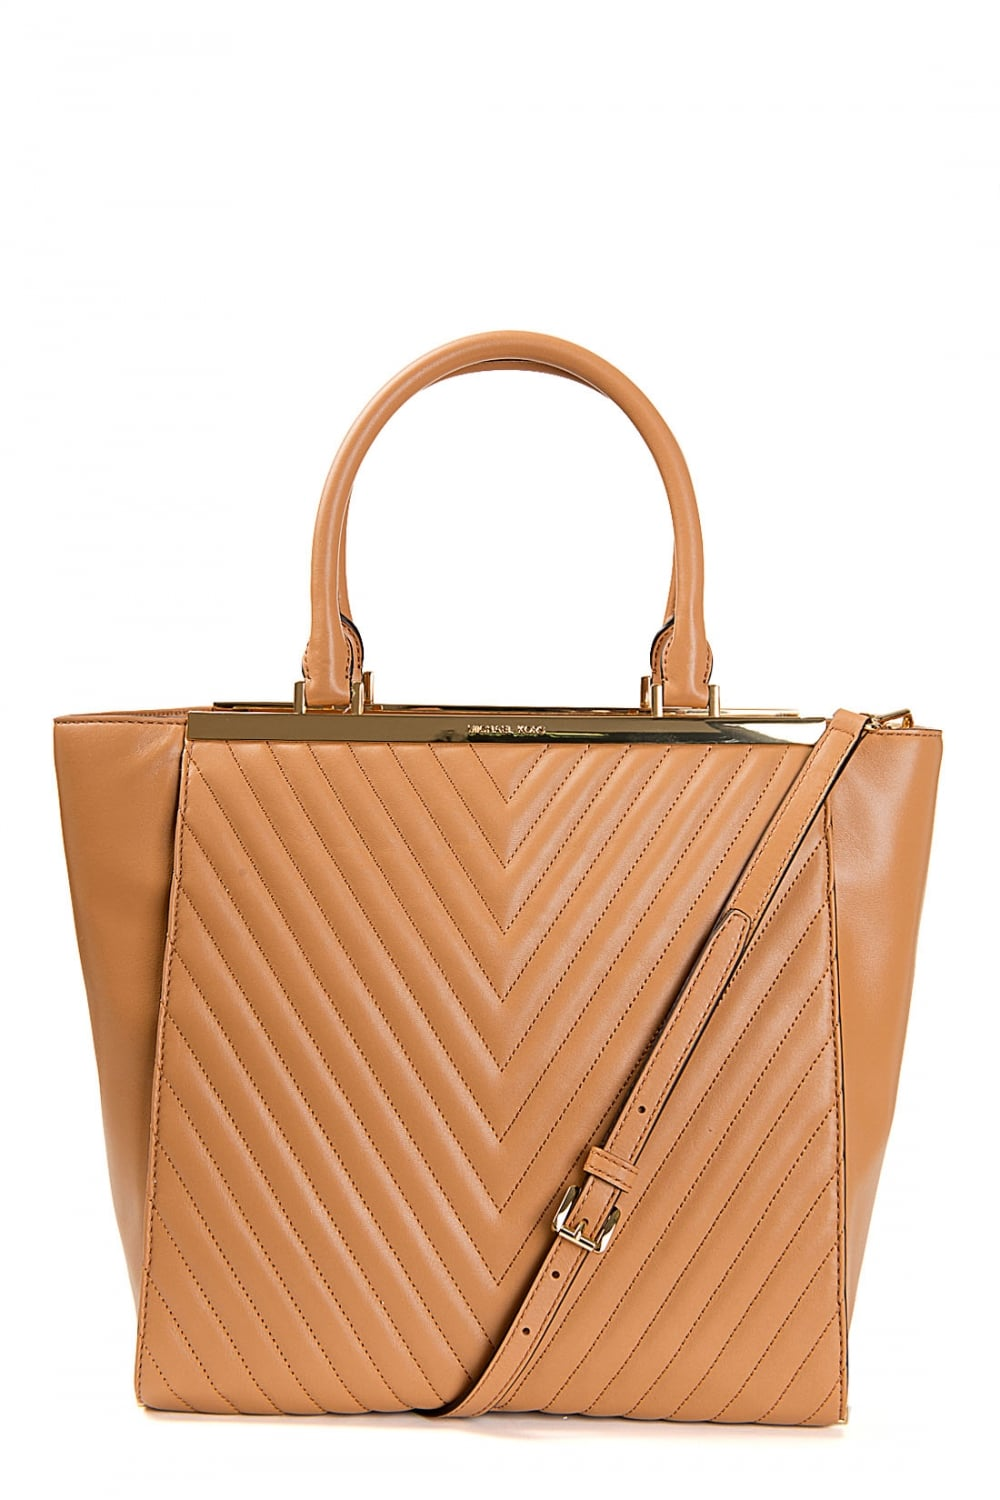 21b6f53935e7 MICHAEL KORS Michael Kors Lana Large Leather Quilted Tote Bag Tan ...